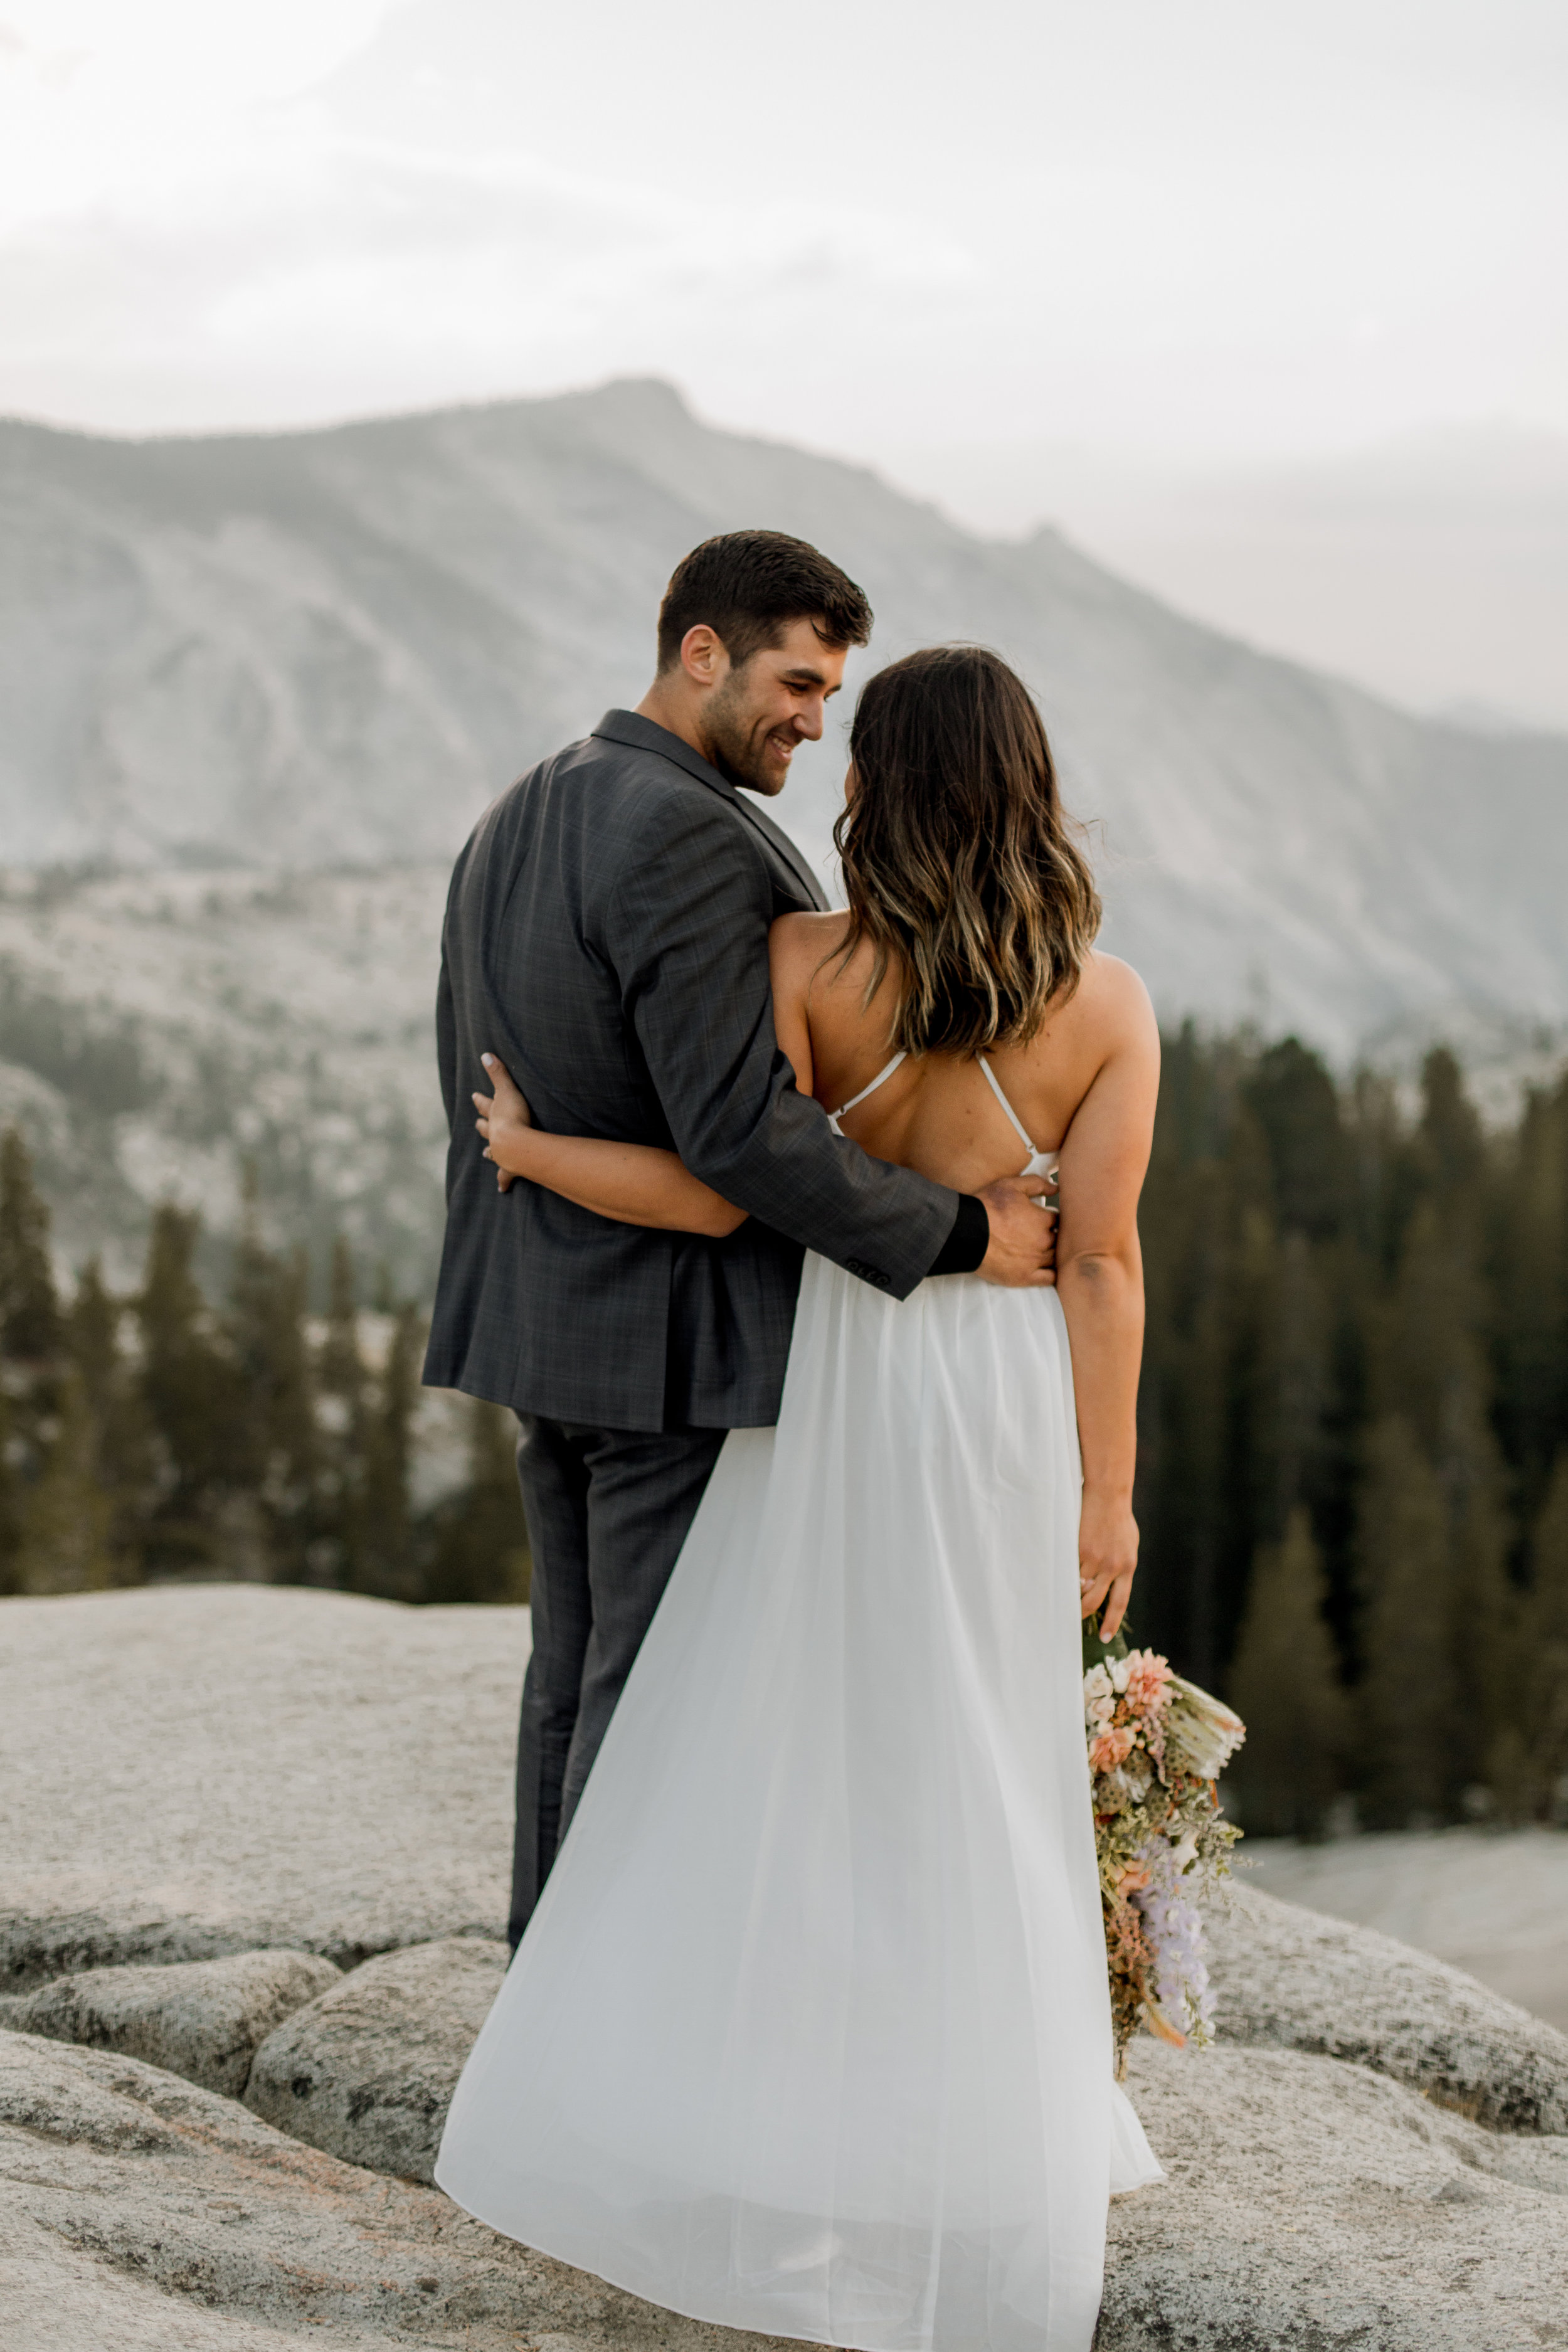 nicole-daacke-photography-yosemite-national-park-fall-elopement-adventurous-free-spirit-boho-bohemian-elopement-olmsted-point-yosemite-california-elope-adventure-elopement-photographer-42.jpg